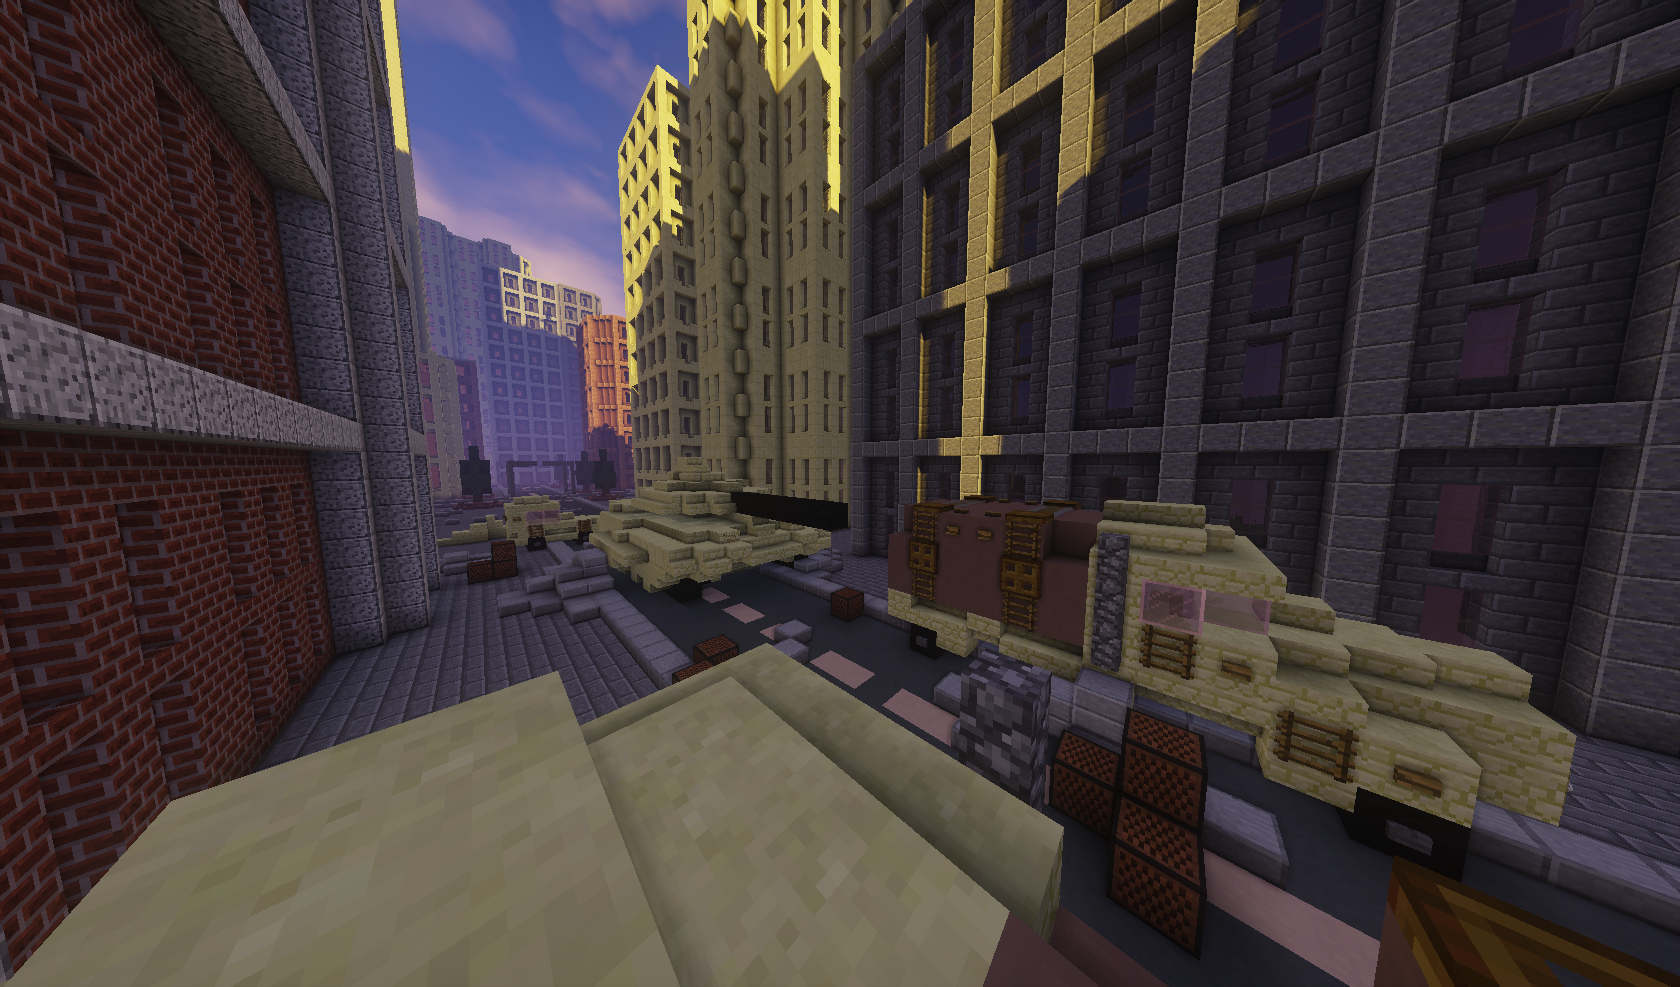 Images - Zombie Epidemic - Worlds - Projects - Minecraft CurseForge